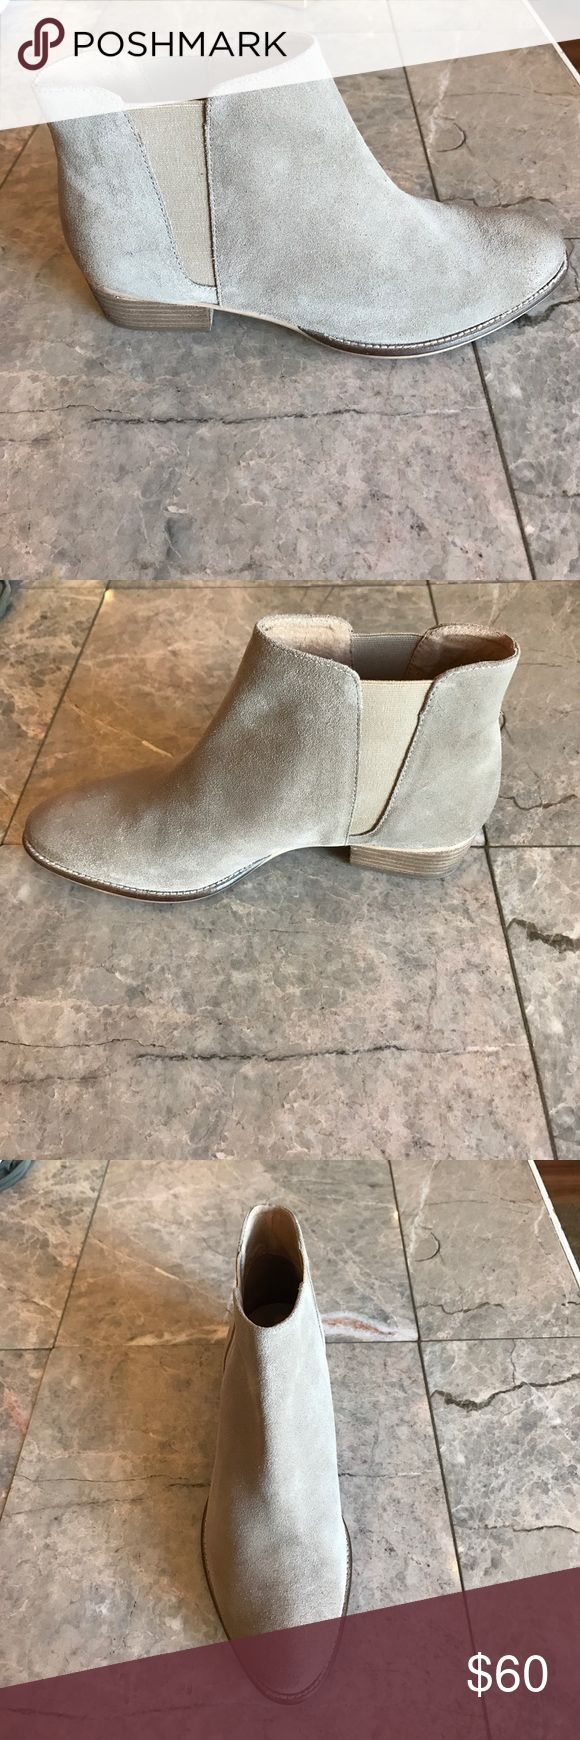 Seychelles Wake chelsea boot Sand suede Chelsea boot with elastic at ankle. Fit is slightly large. 1.5 inch heel. New in box. Seychelles Shoes Ankle Boots & Booties